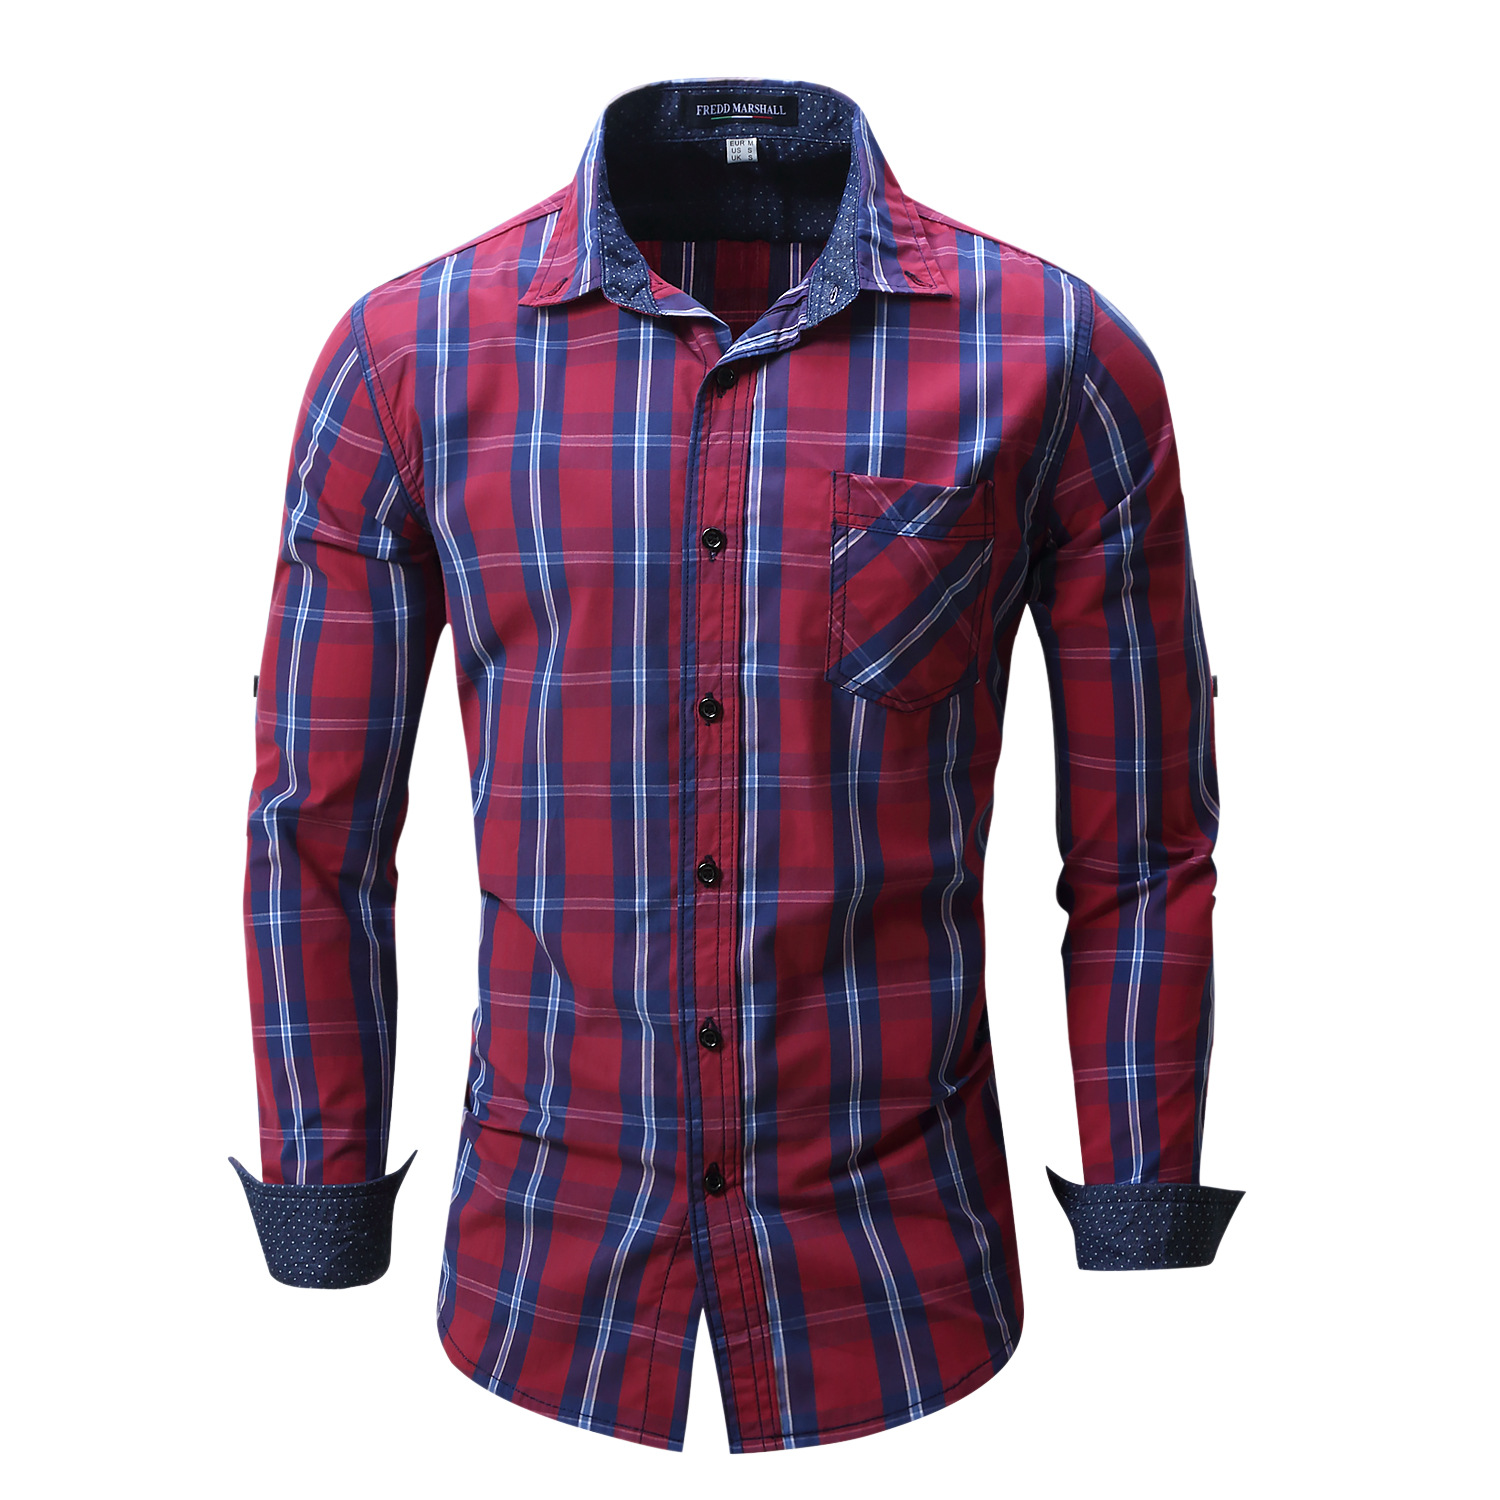 Fashion mens dress shirt fredd marshall luxury man 39 s for Expensive mens dress shirts brands